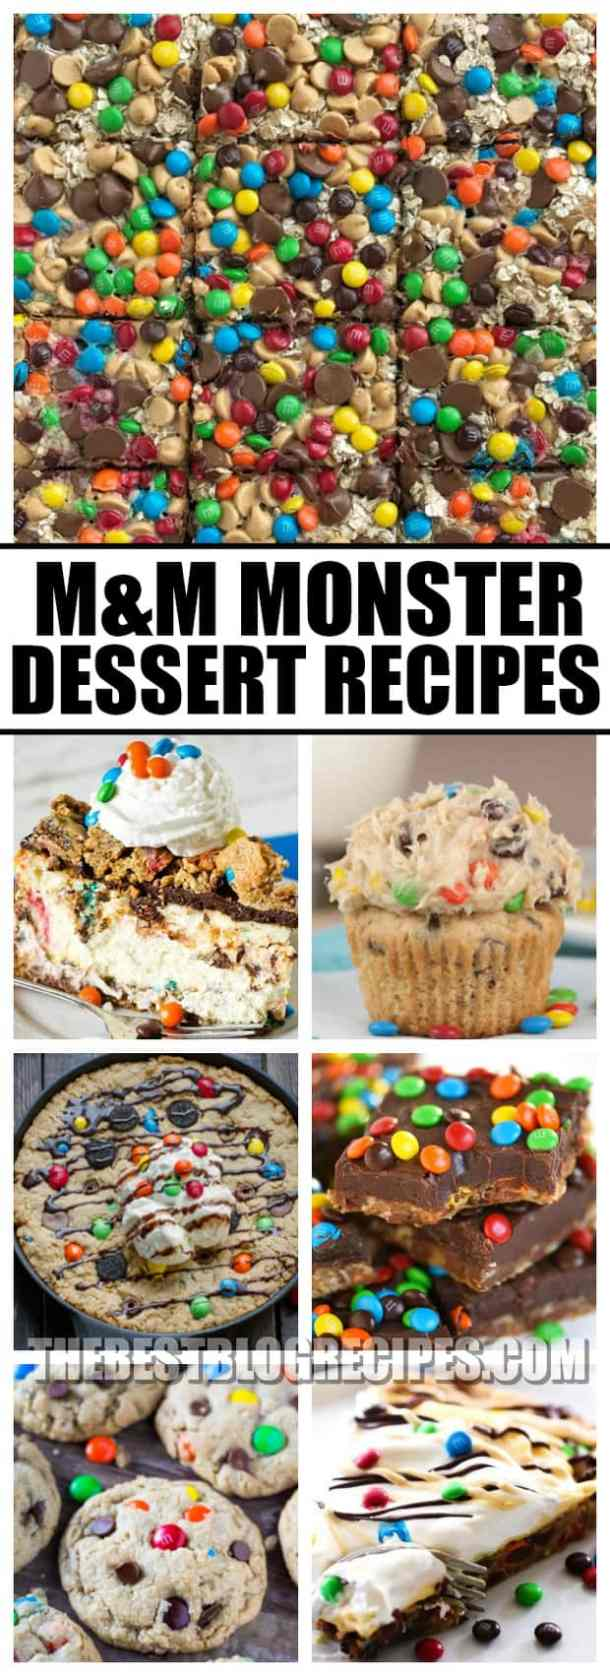 Need a go to dessert for any occasion? Check out M&M Monster Dessert Recipes that your kids will love! With delicious flavors and so much variety, monster recipes are proven to have kids and adults alike coming back for more!